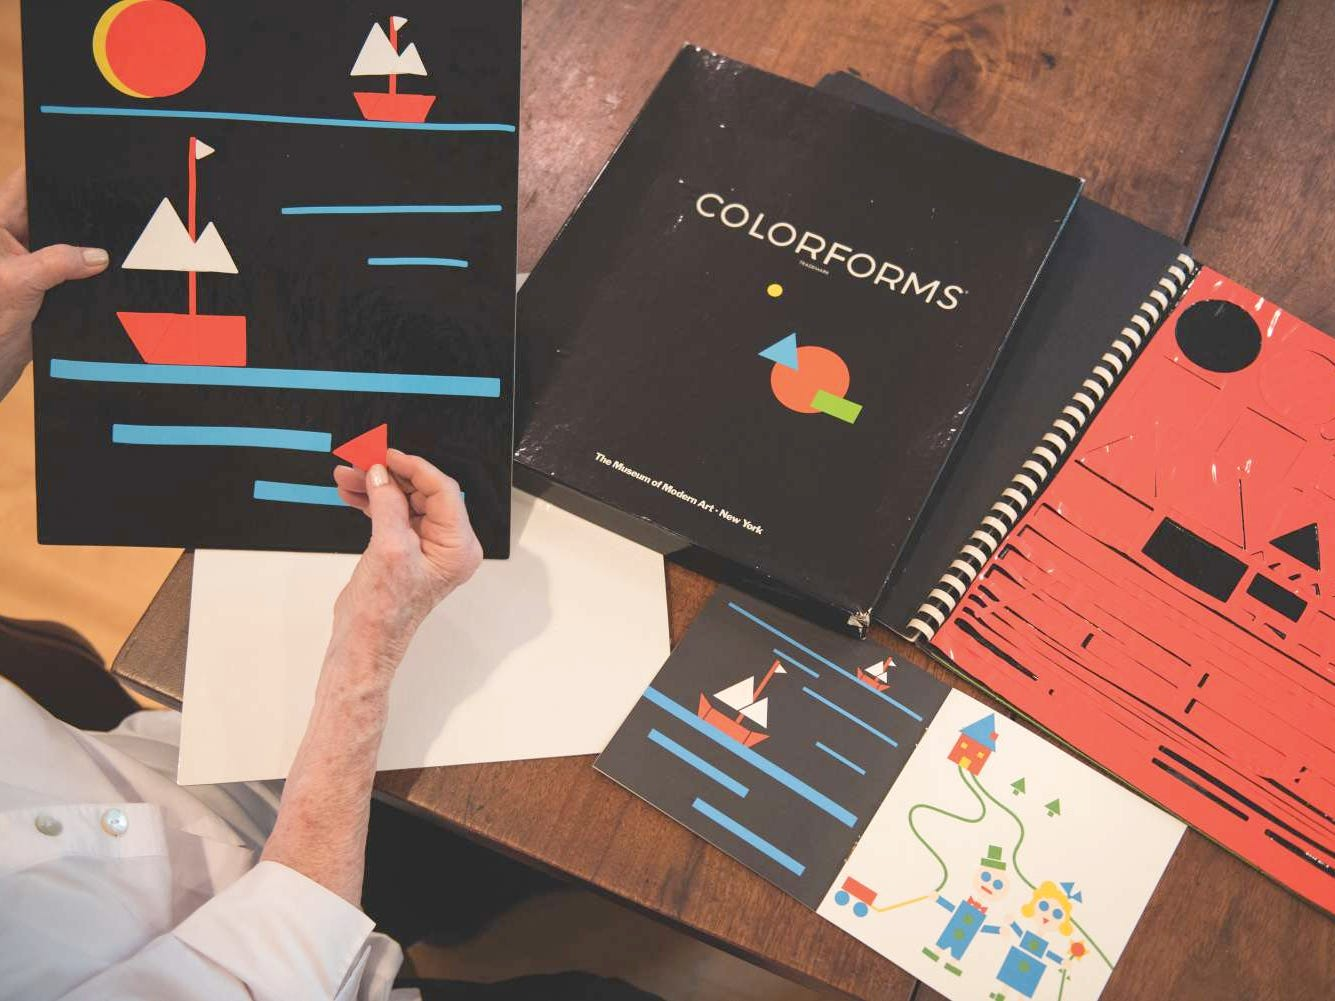 Colorforms - the iconic toy featuring vinyl shapes that stick to a screen,  grew from the basement of a River Edge couple''s home in the 1950s.